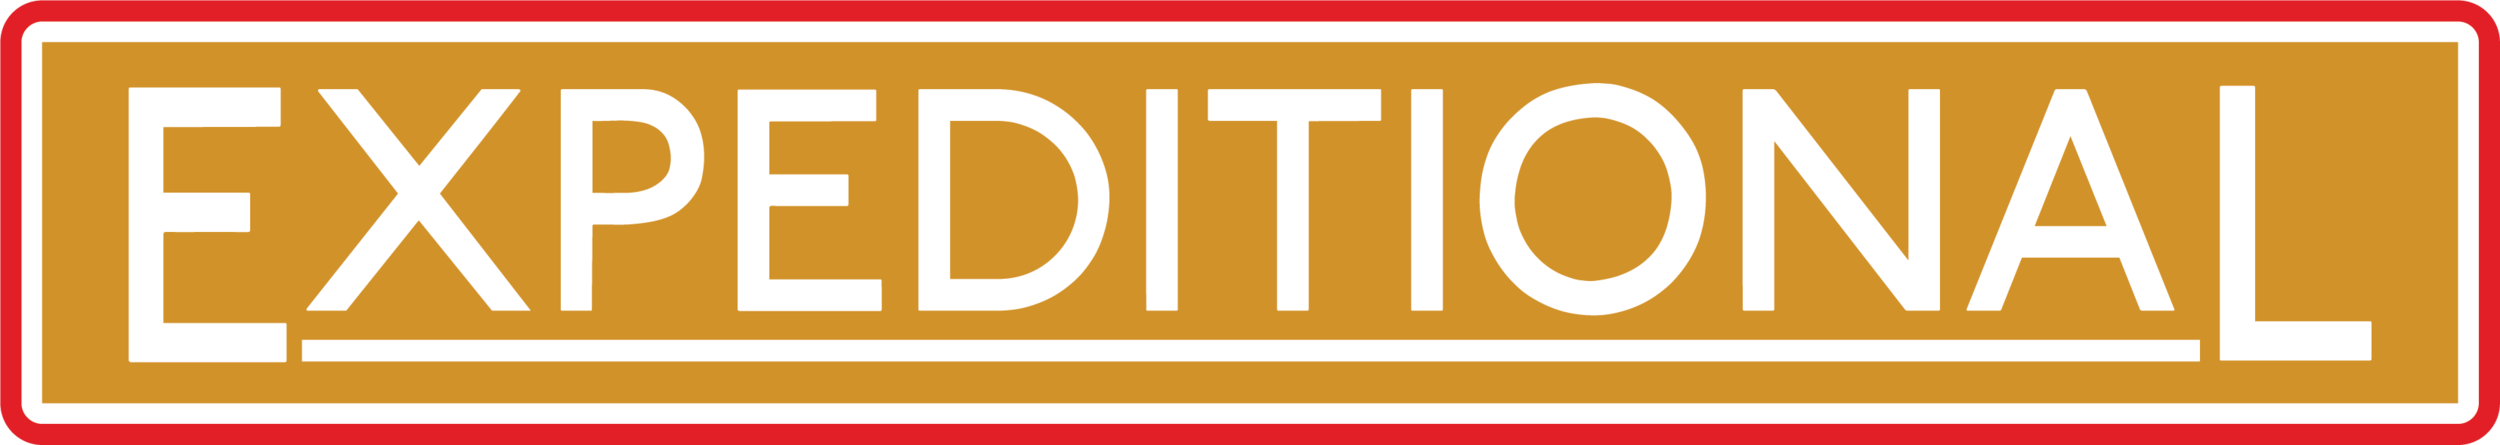 Expeditional Logo.png